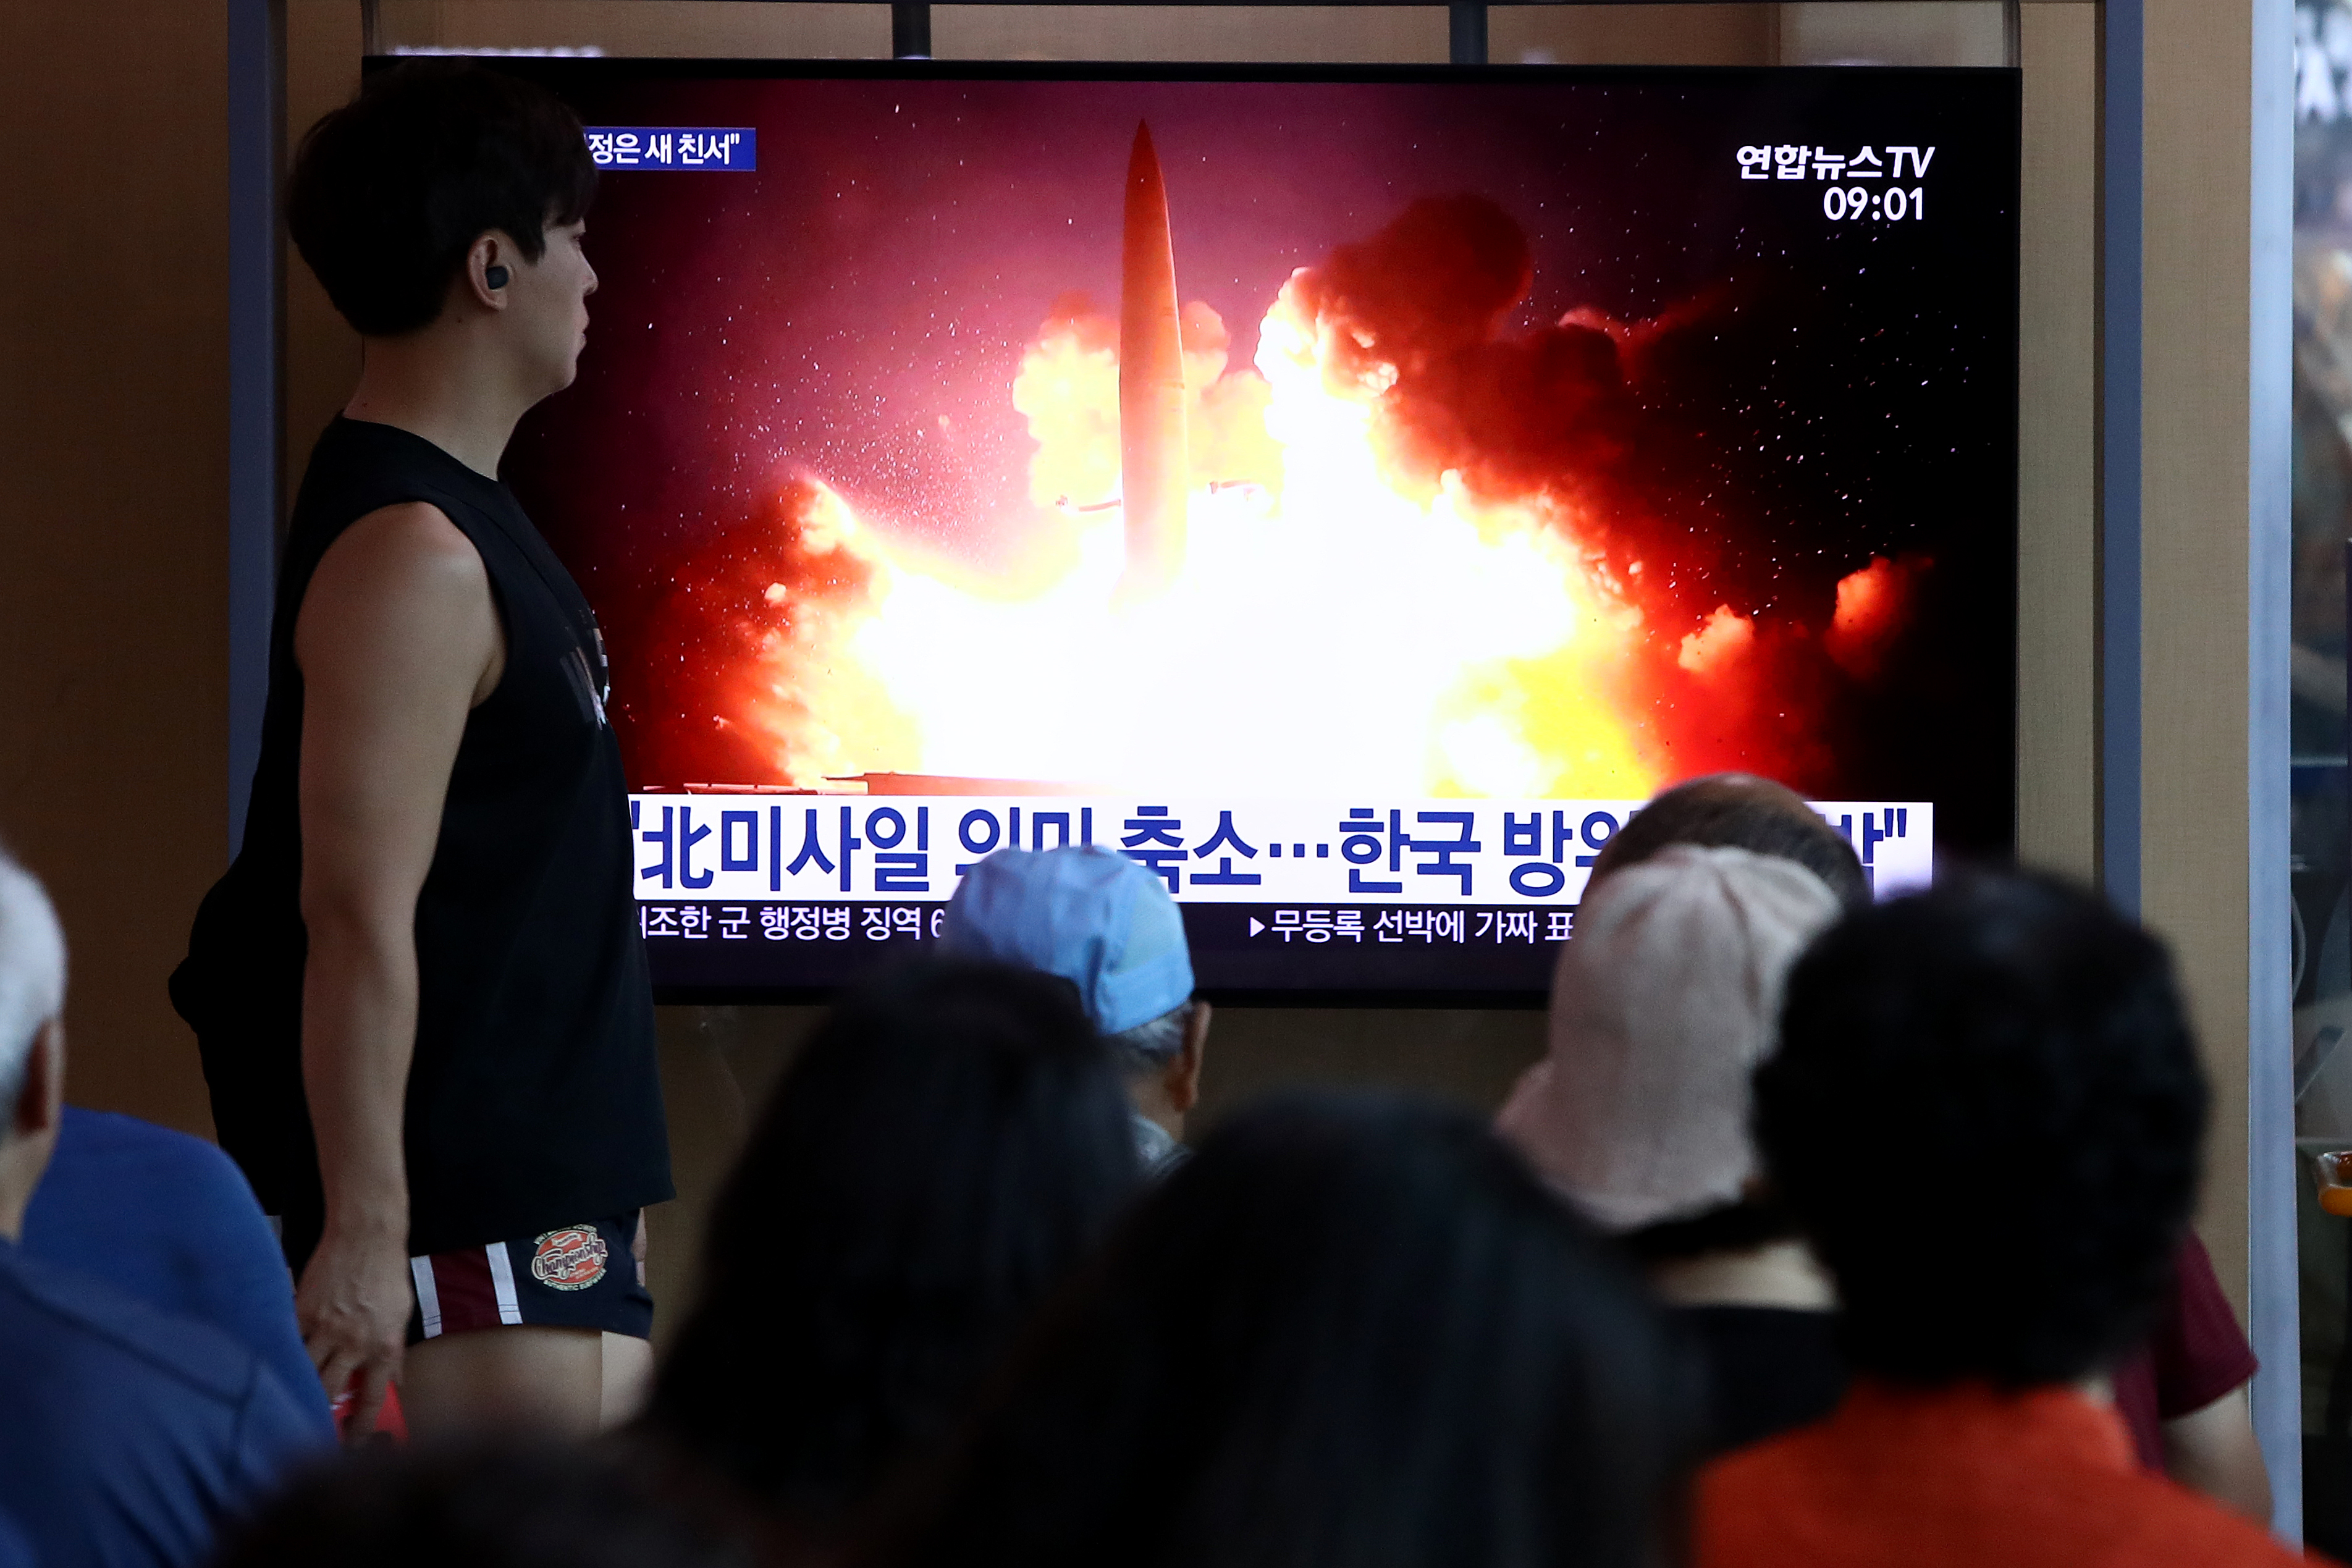 North Korea continues to test weapons. Trump continues not to care.